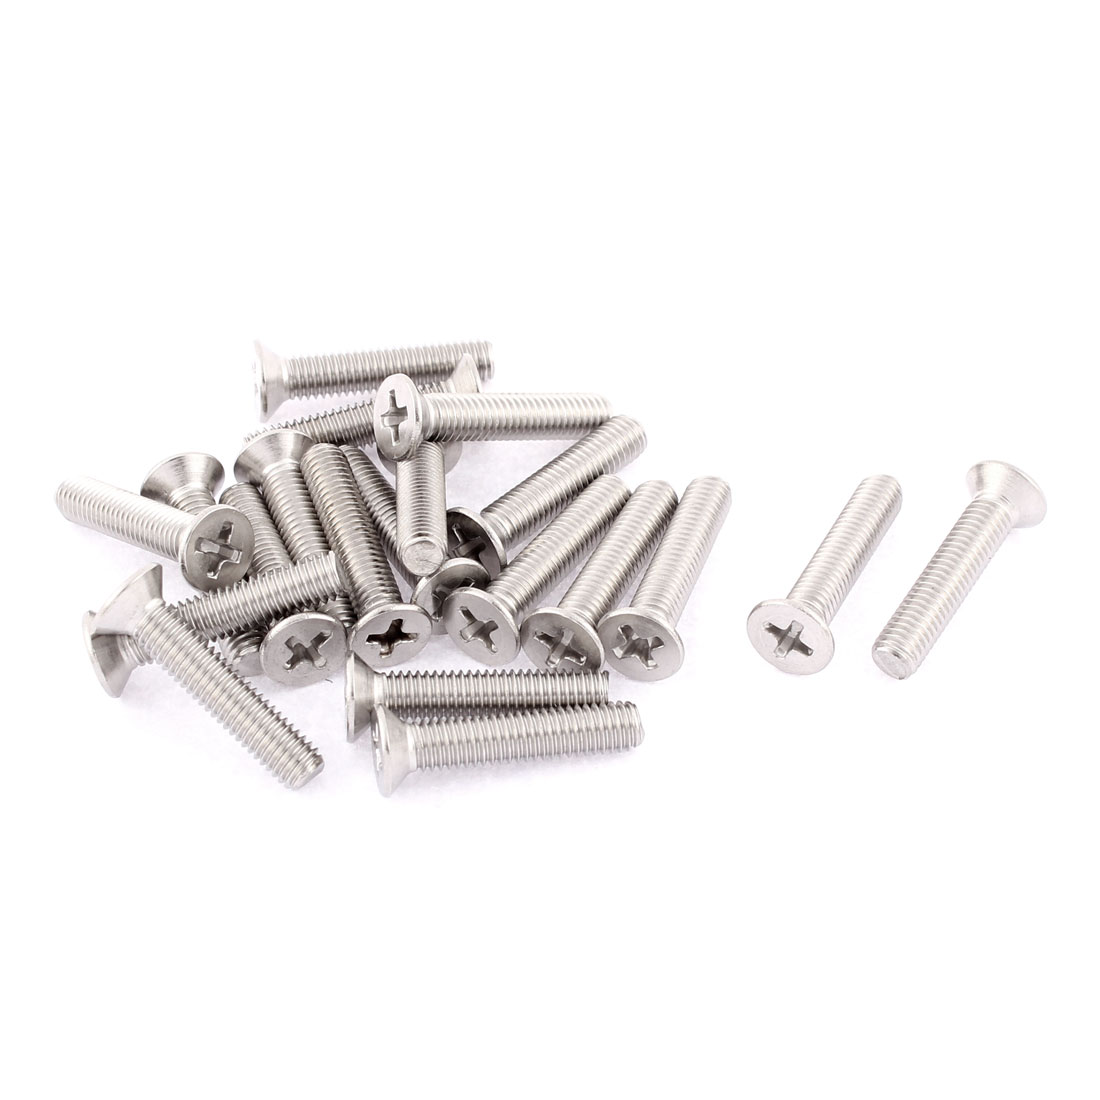 M5 x 25mm Phillips Socket Countersunk Bolts Machine Screws 20 Pcs